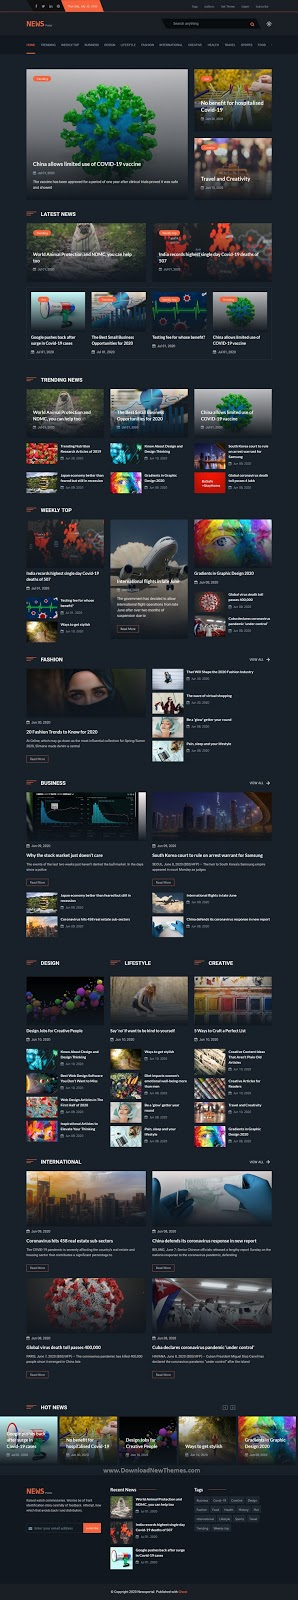 News and Magazine Ghost Blog Theme